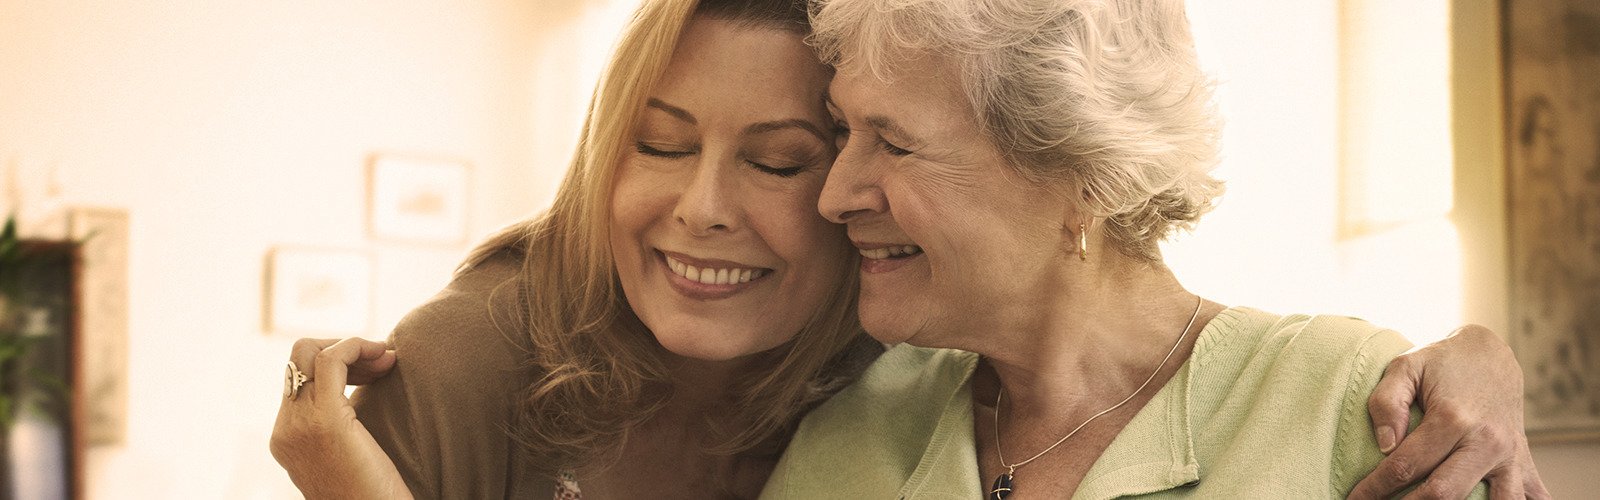 Elderly woman hugging younger woman – getting ready to be a caregiver